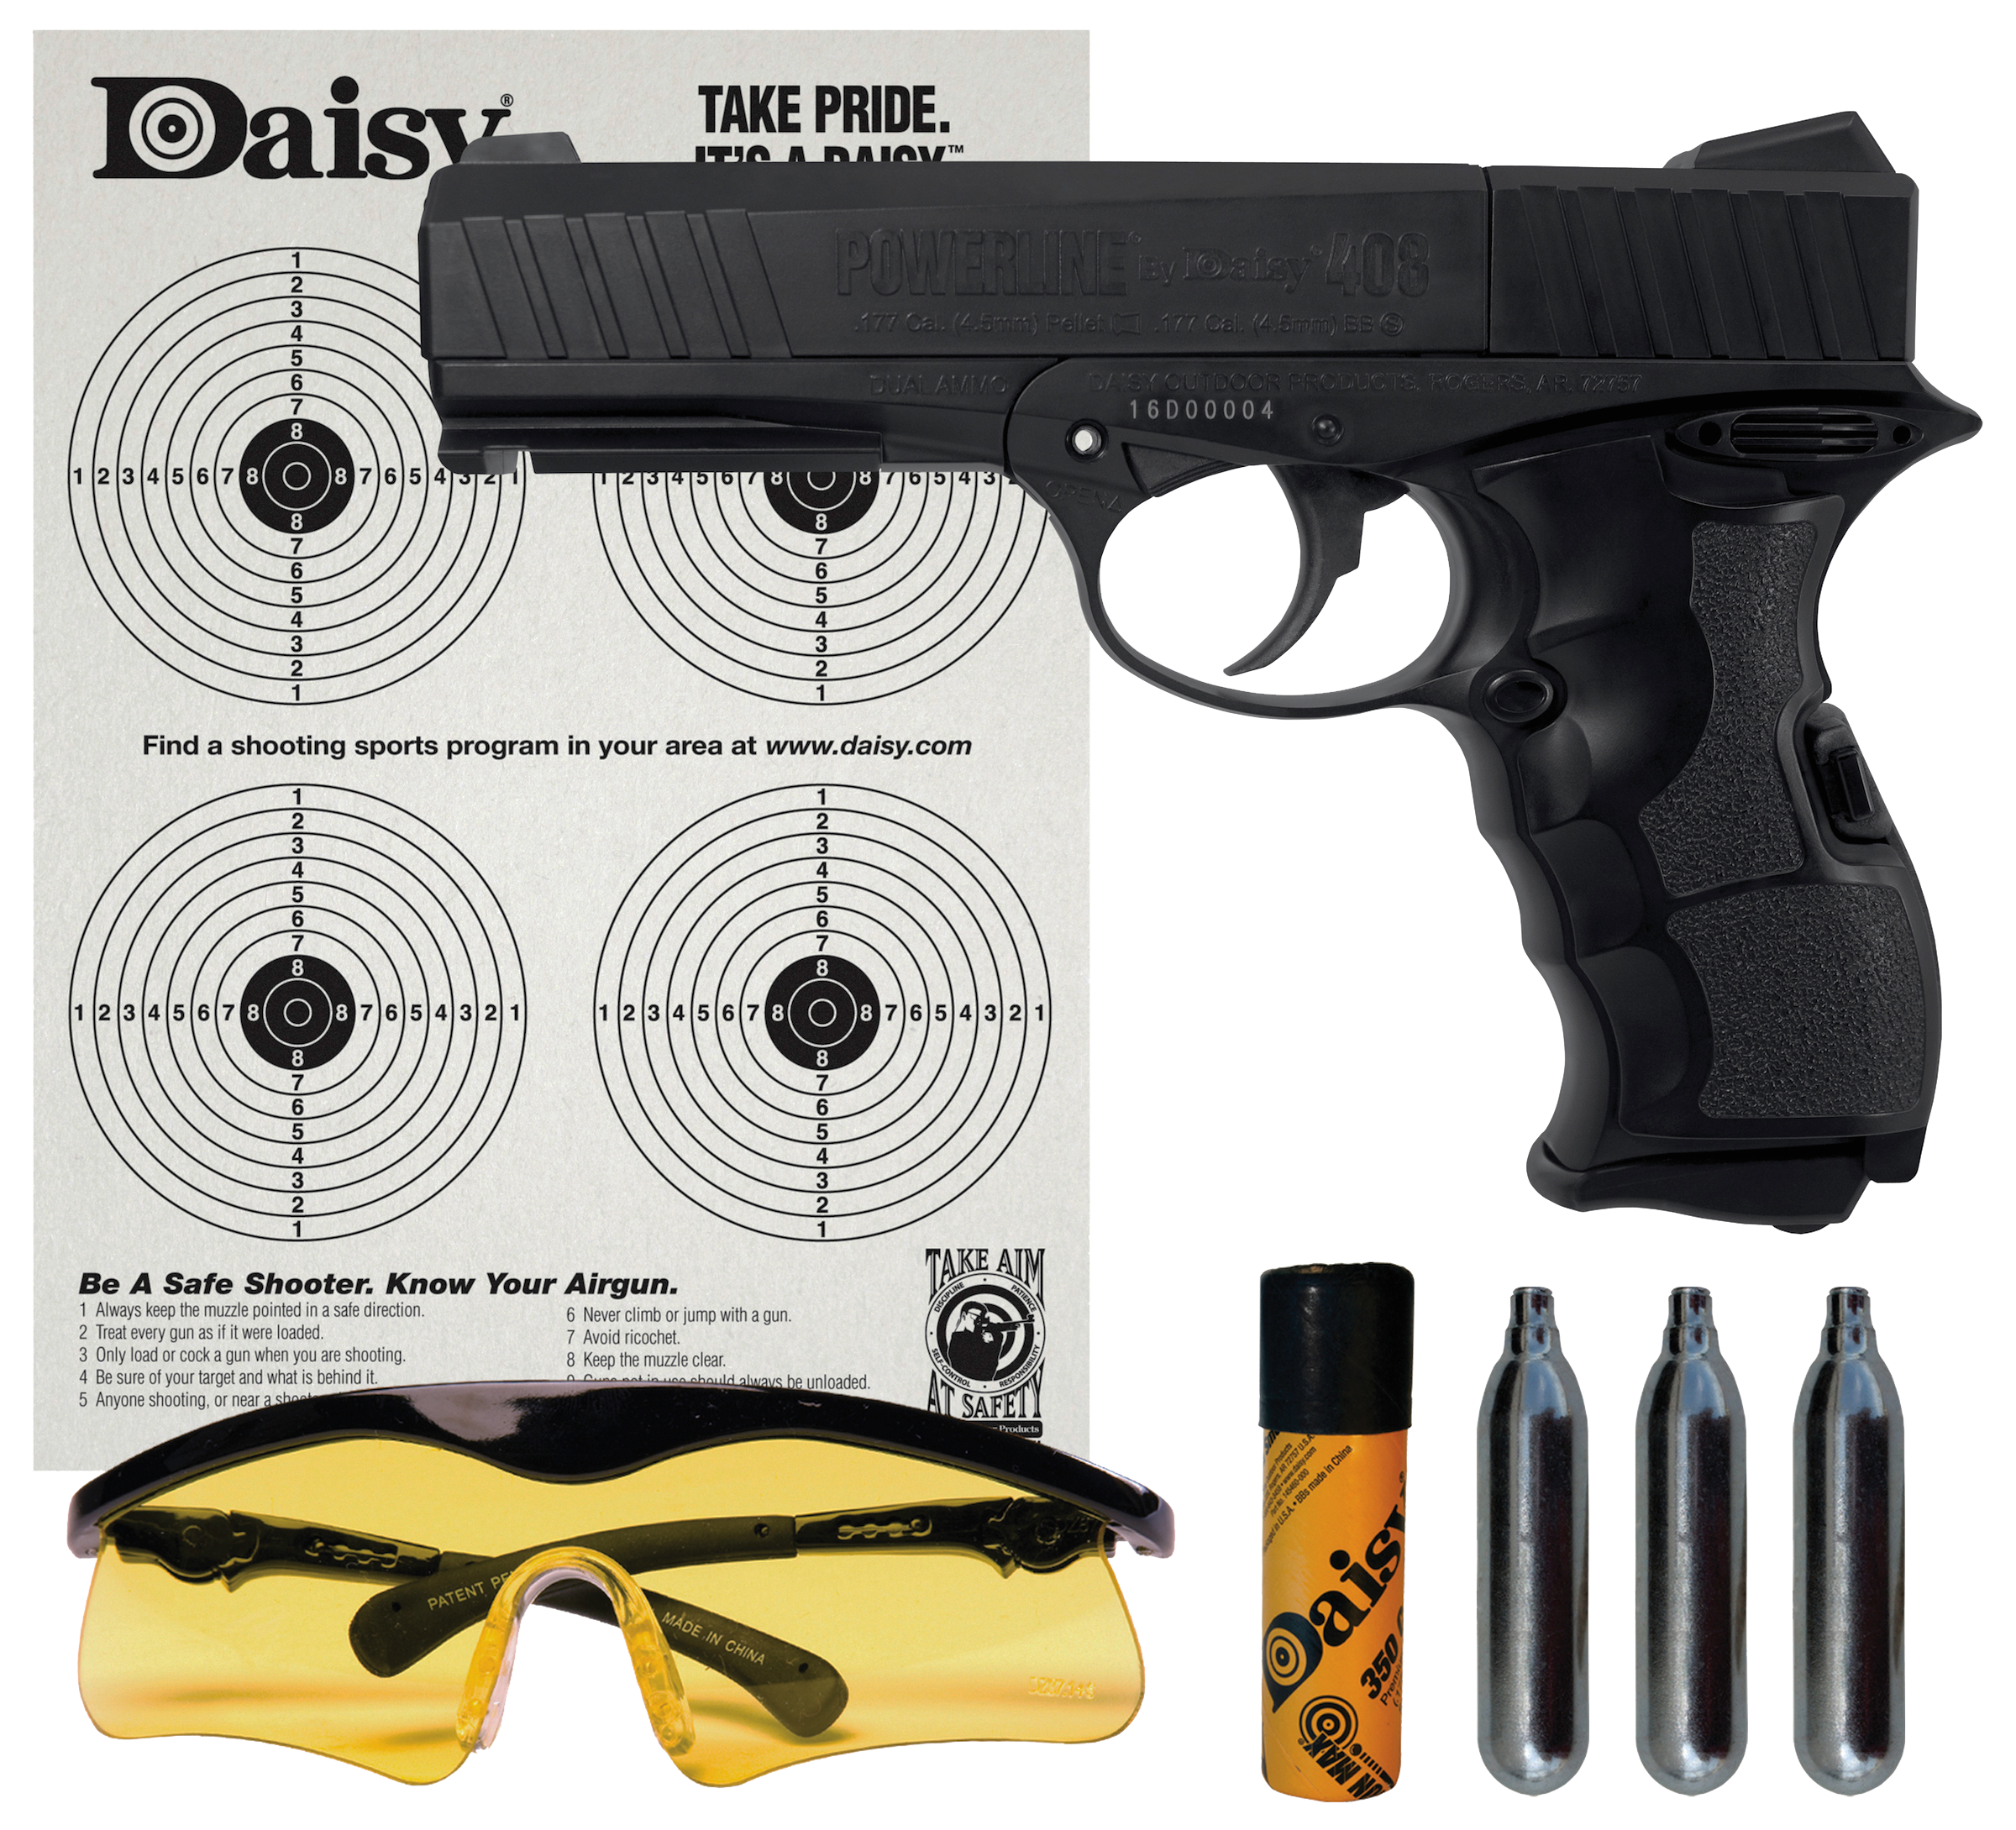 Daisy 4408 PowerLine 408 Air Pistol Kit Semi-Automatic .177 Pellet/BB Black CO2/BBs/Pellets/Glasses/Targets